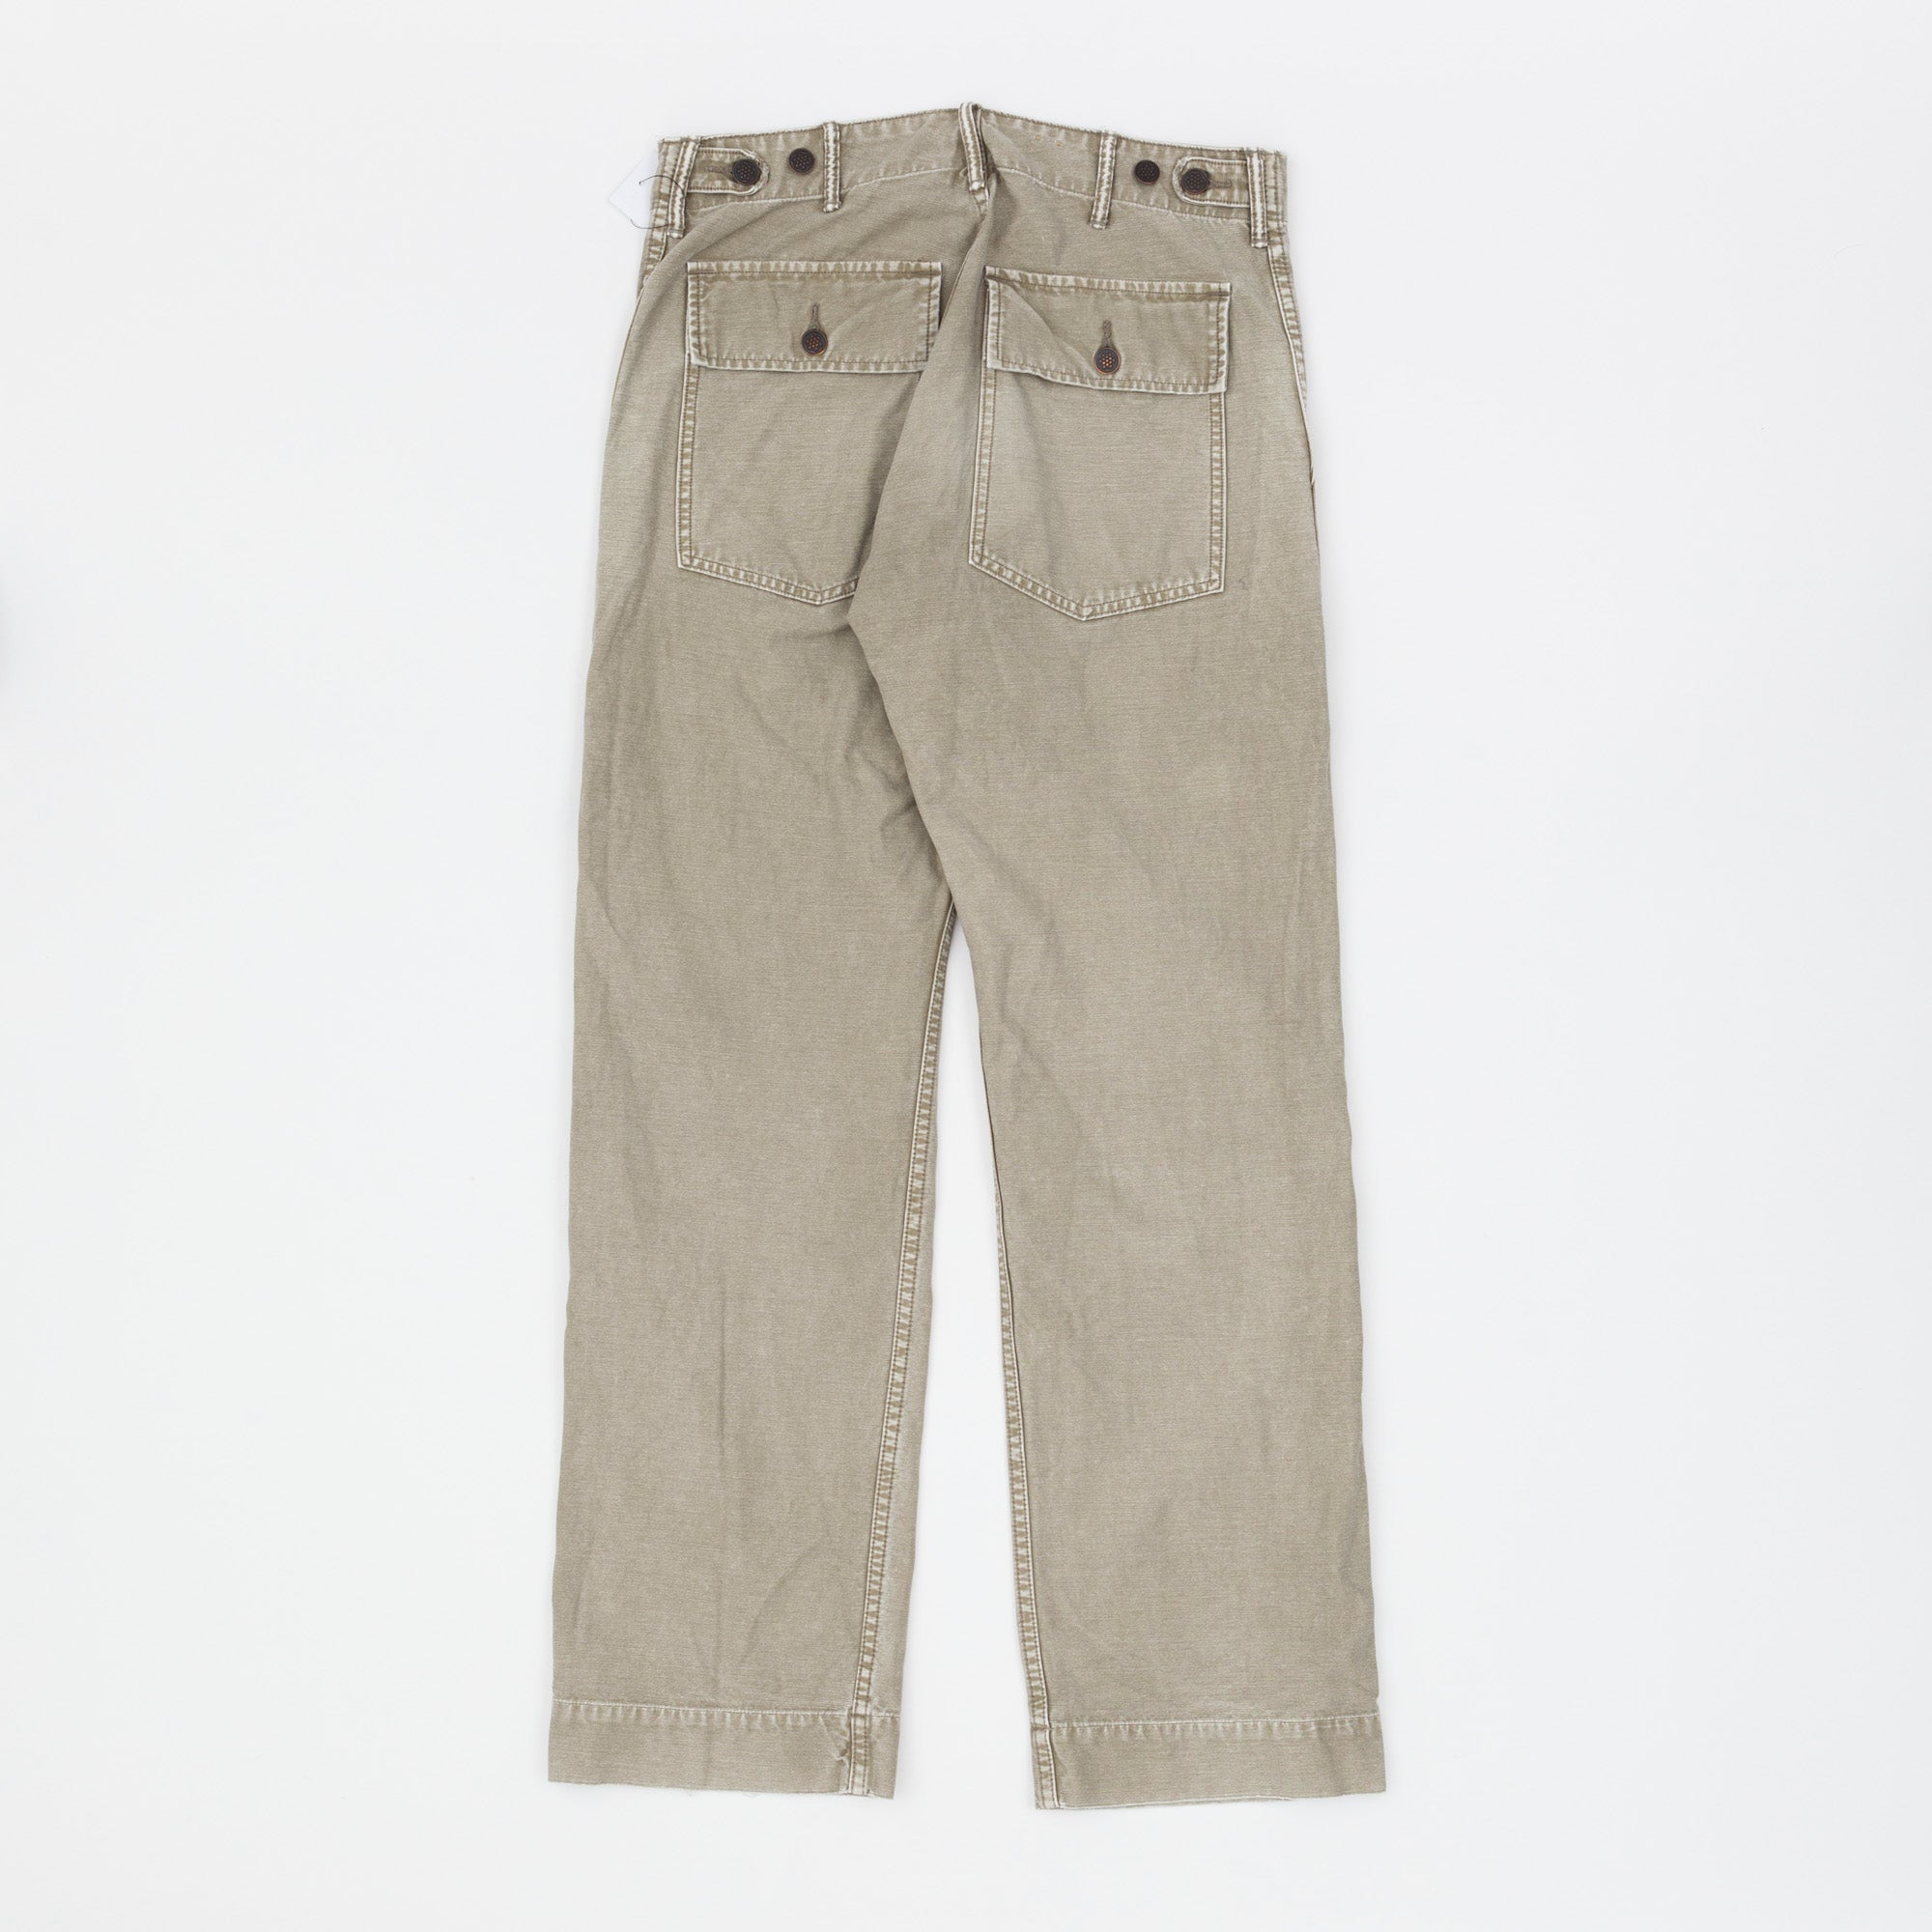 Herringbone Fatigue Pant